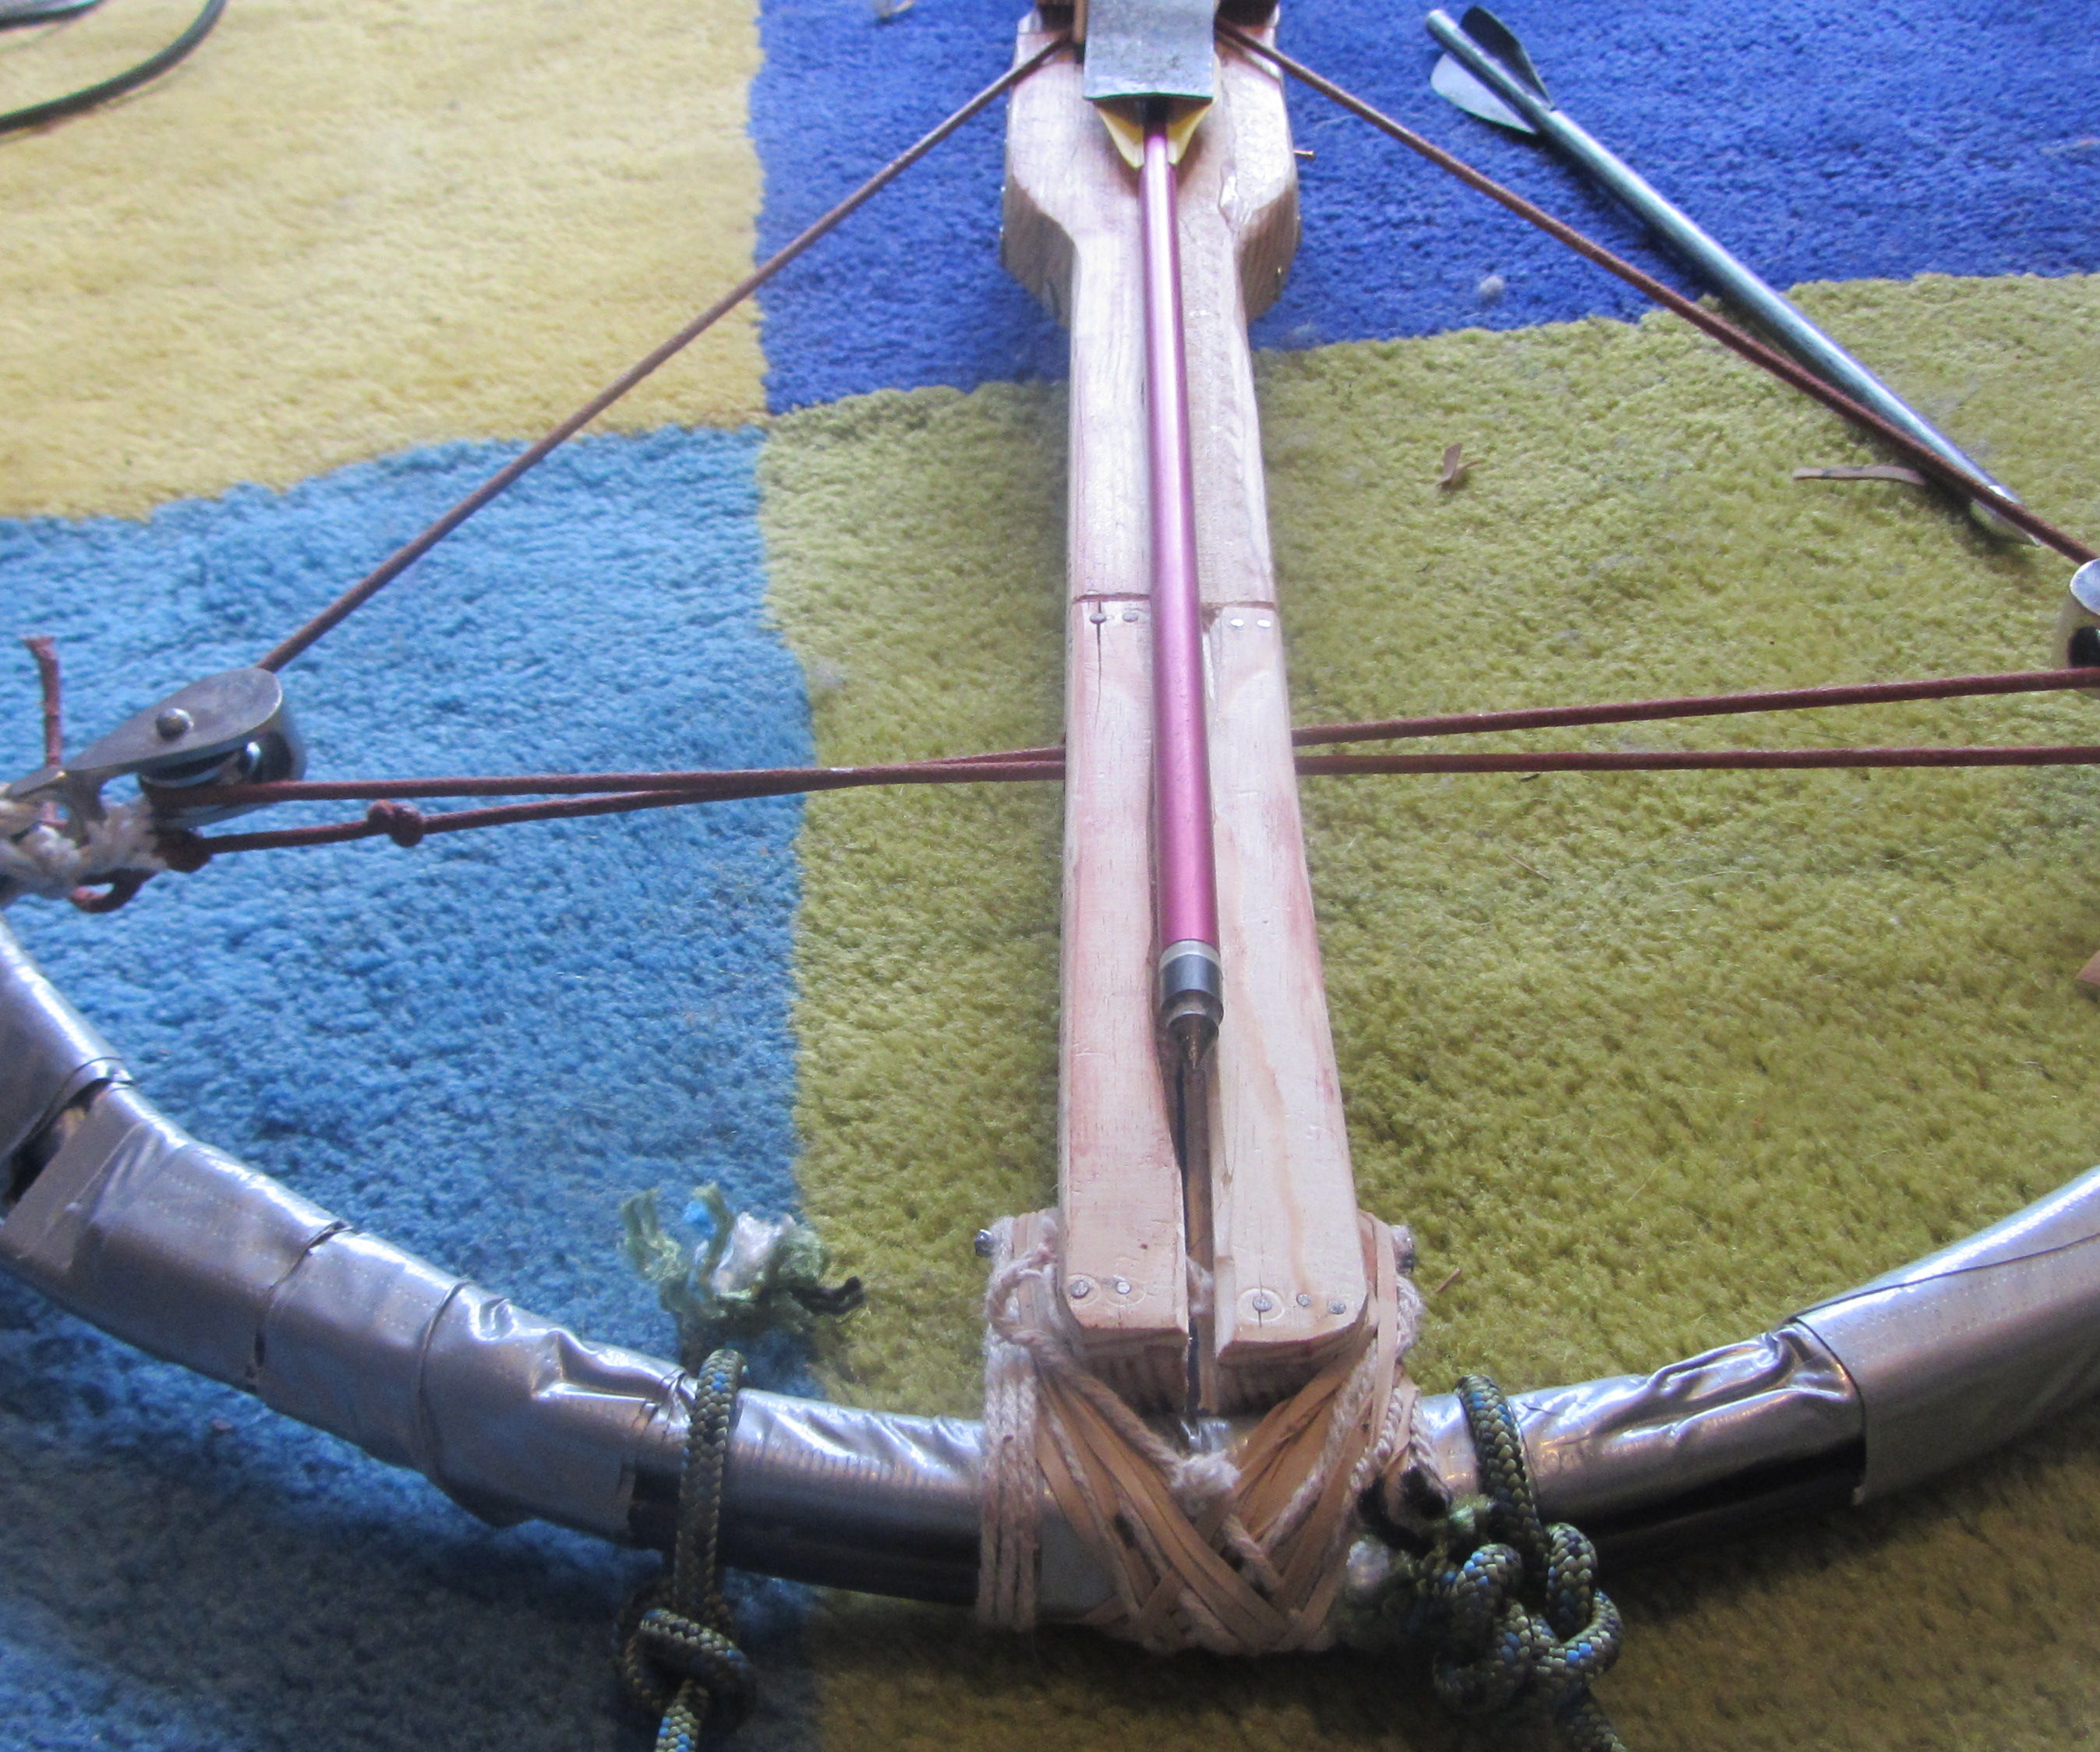 How To Make An Extremely Powerful 72lb Compound Crossbow